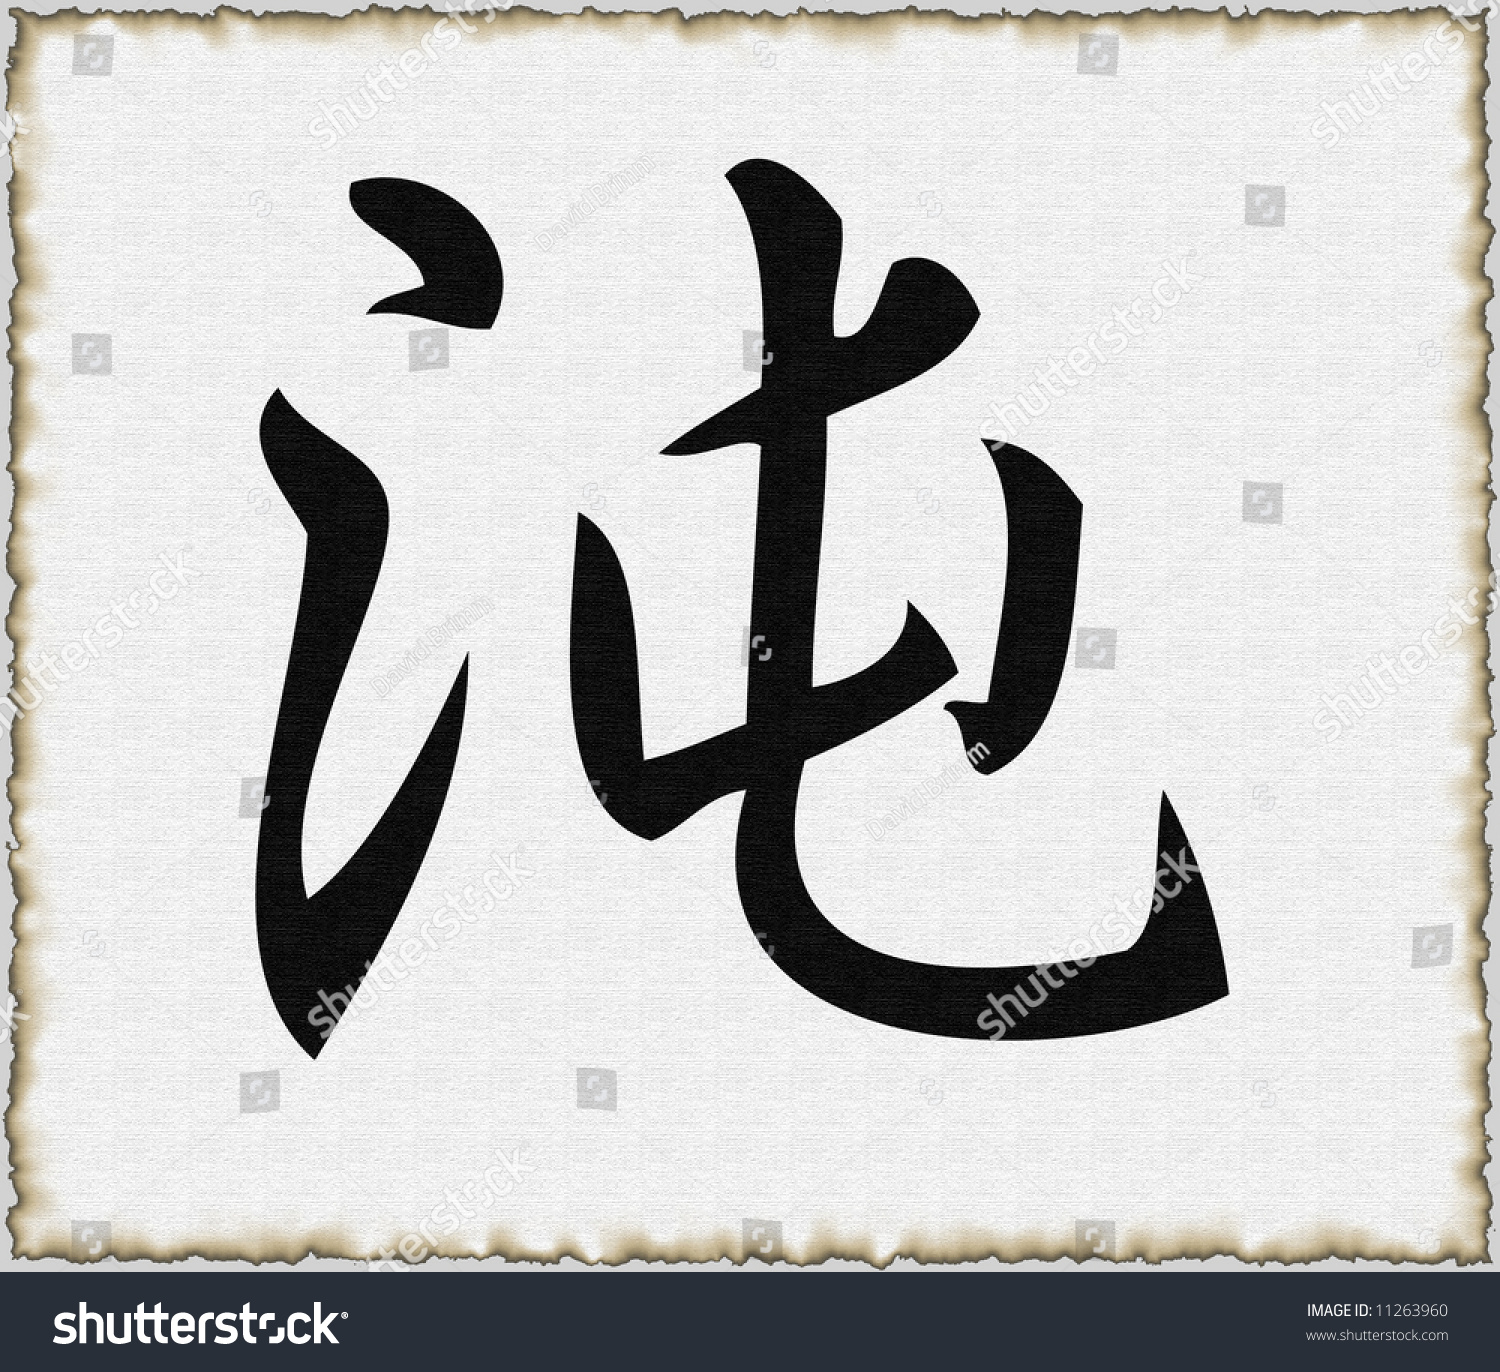 Kanji character chaos rendered on canvas stock illustration kanji character for chaos rendered on canvas background with burned edges biocorpaavc Image collections